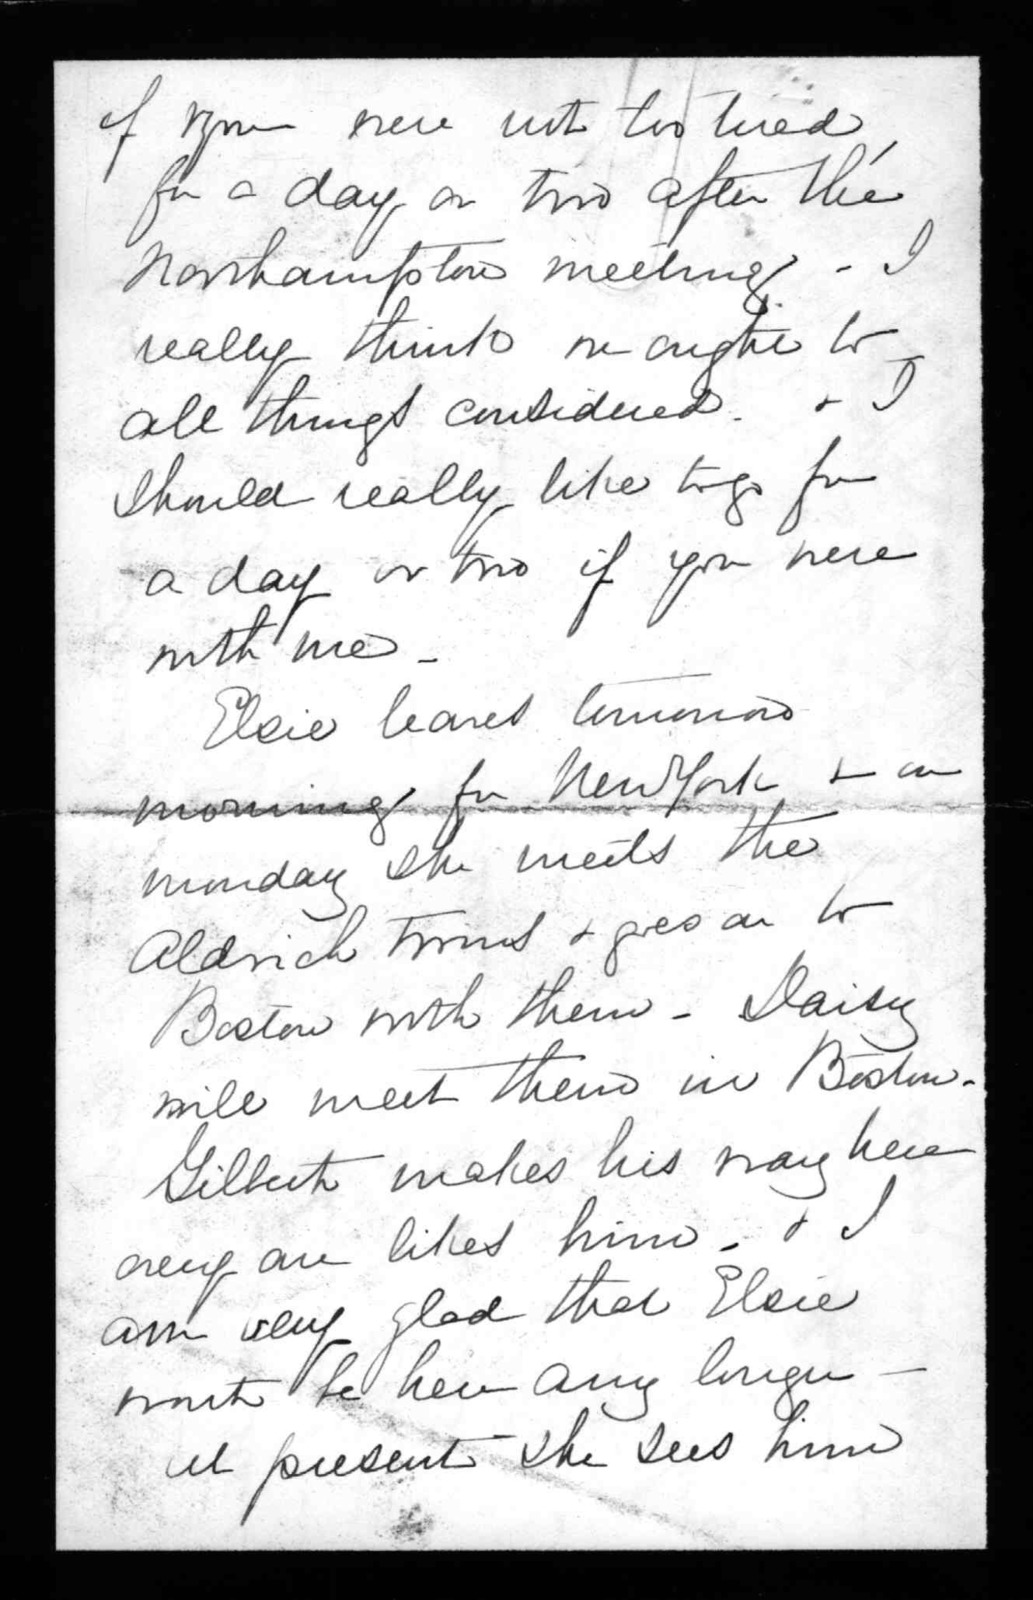 Letter from Mabel Hubbard Bell to Alexander Graham Bell, June 16